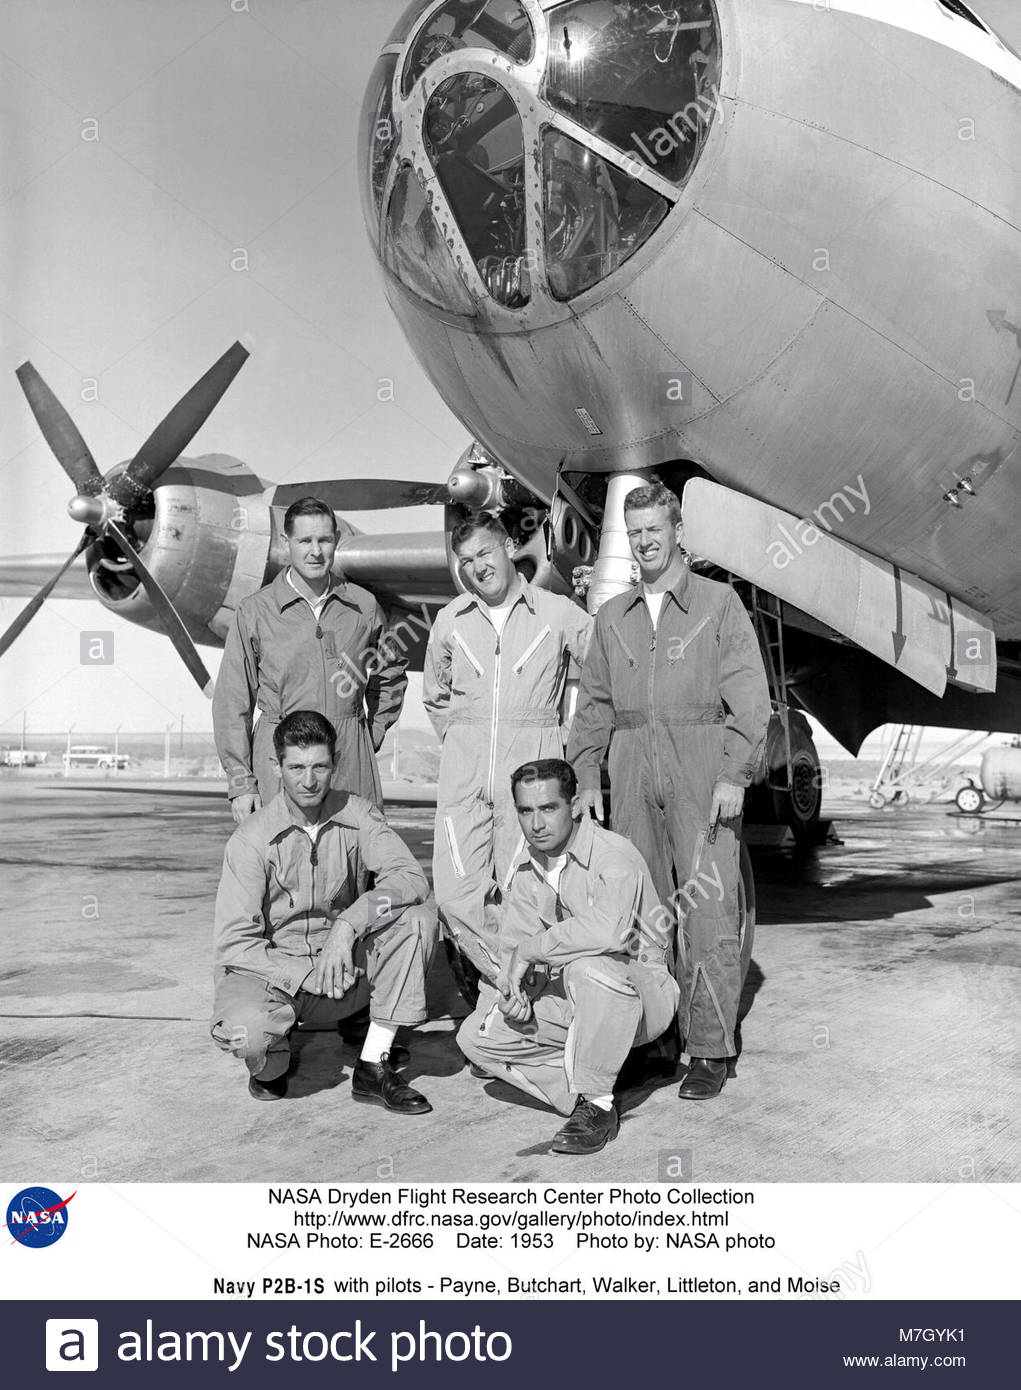 Navy Boeing P2B-1S B-29-95-BW Superfortress (BuNo 84029) with pilots-Payne, Butchart,. NASA Armstrong Fact Sheet: - Stock Image